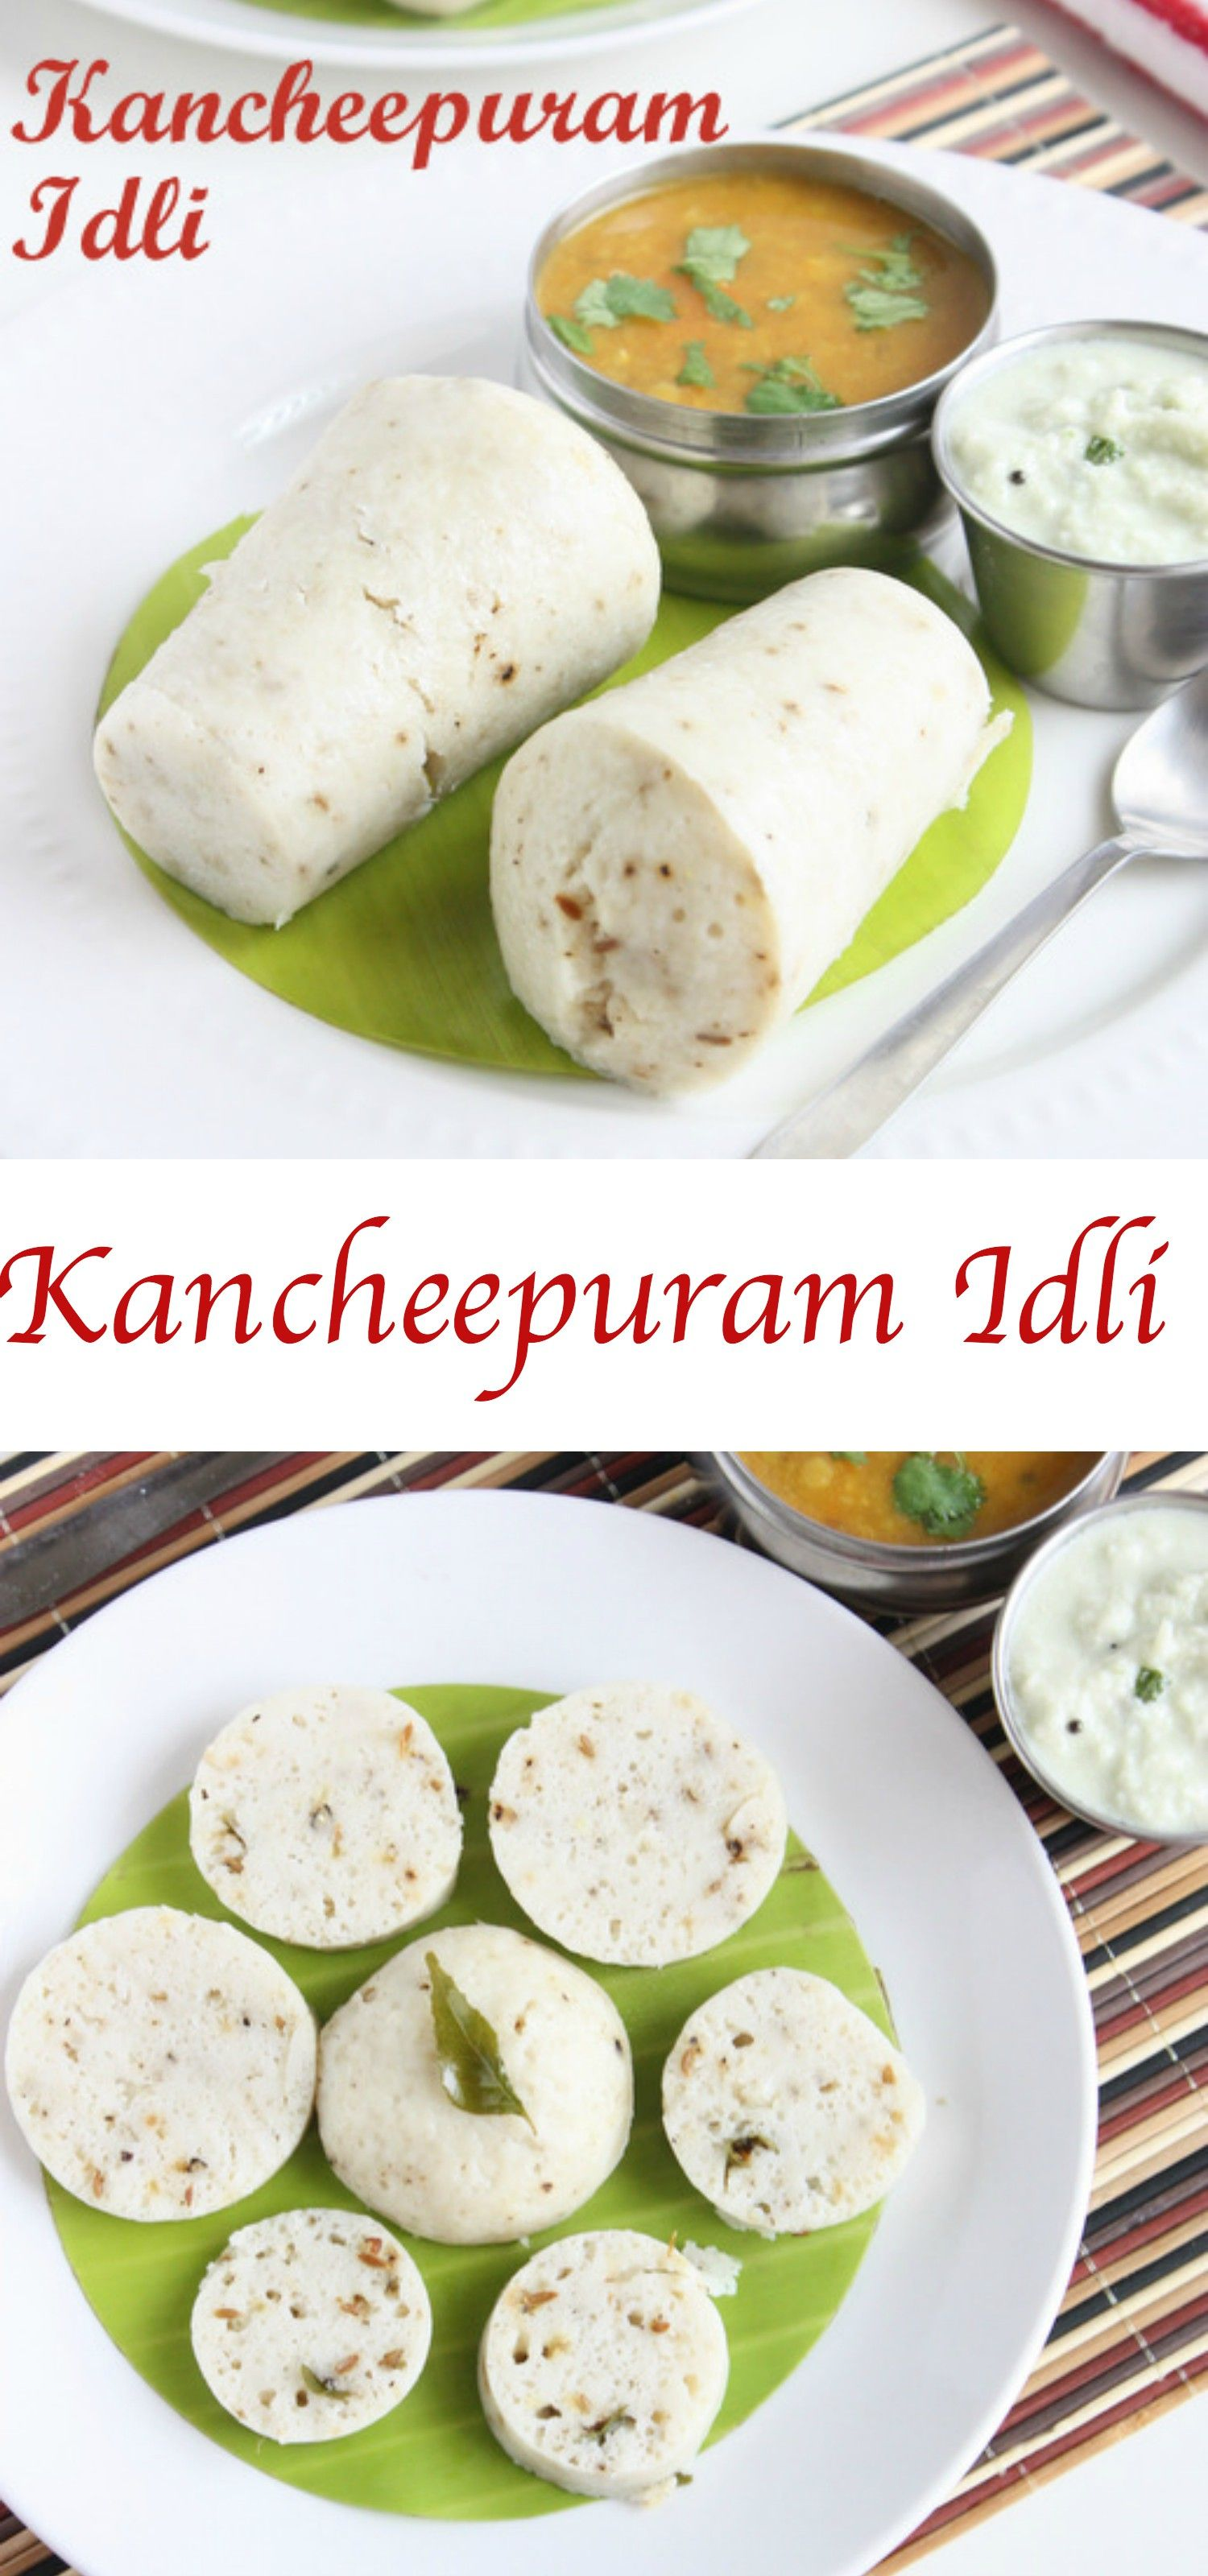 Kancheepuram style idly kanchipuram idli breakfast recipe food blogs forumfinder Gallery